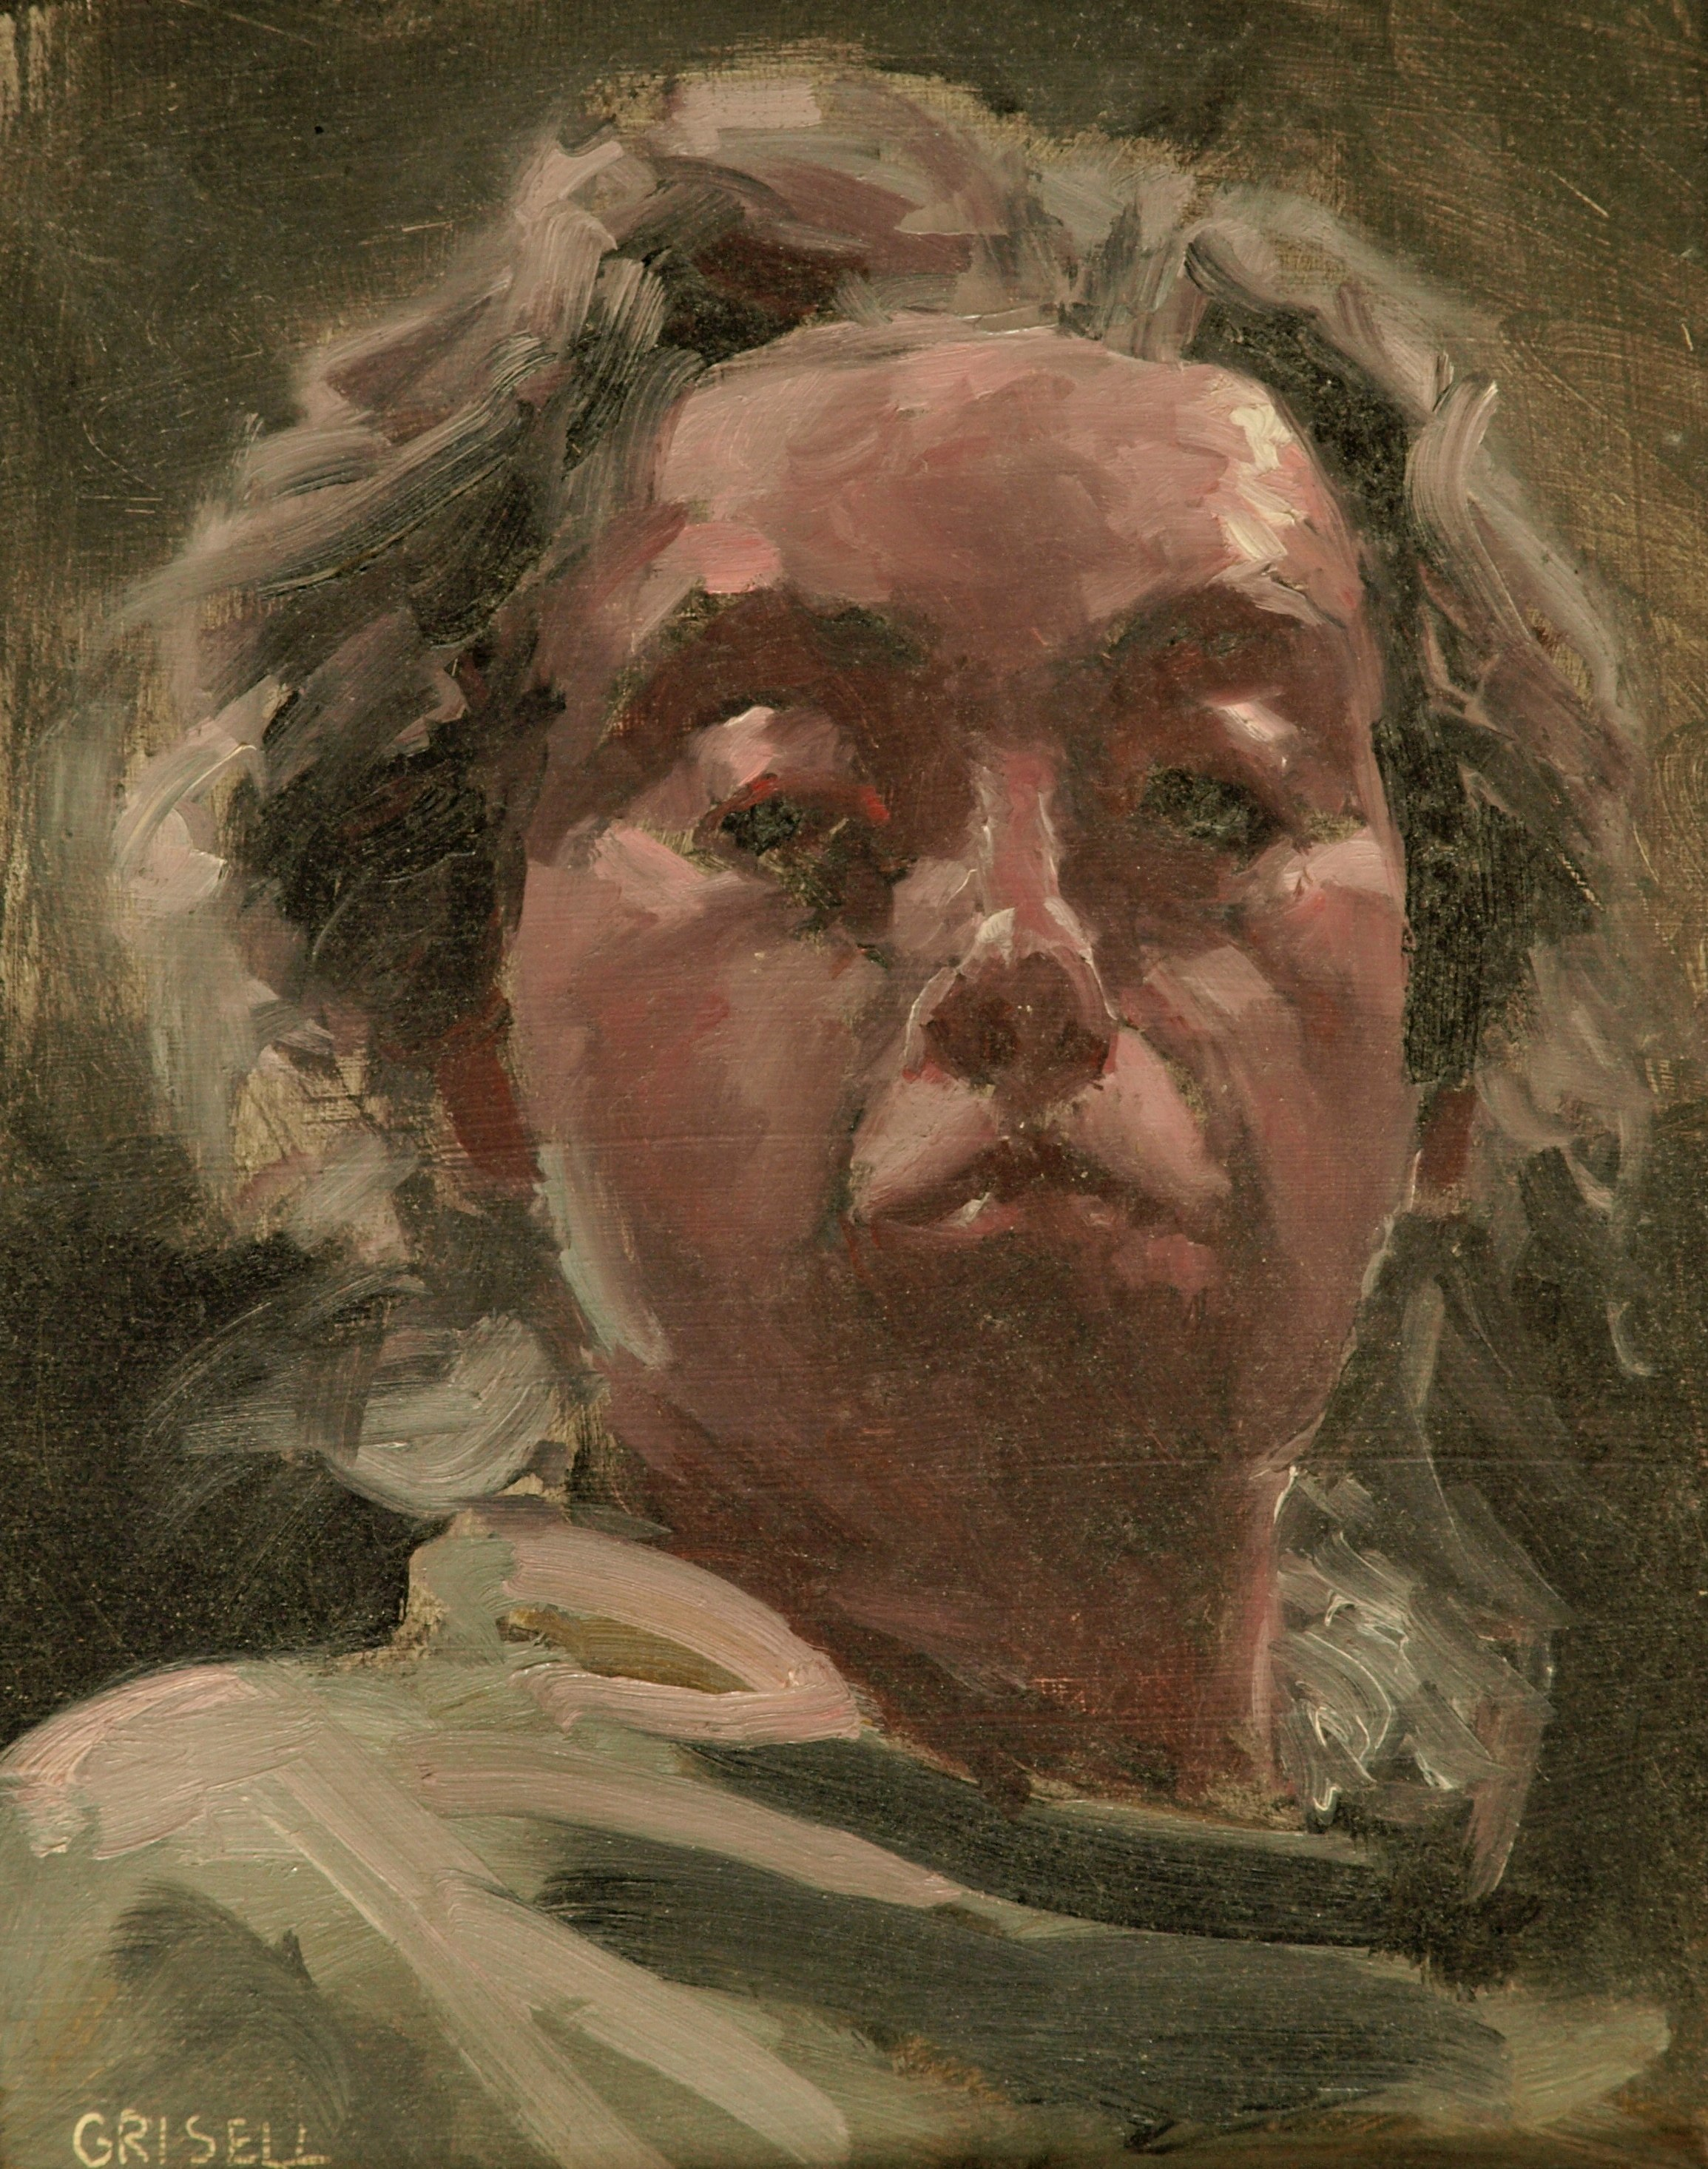 Self Portrait, Oil on Panel, 10 x 8 Inches, by Susan Grisell, $150